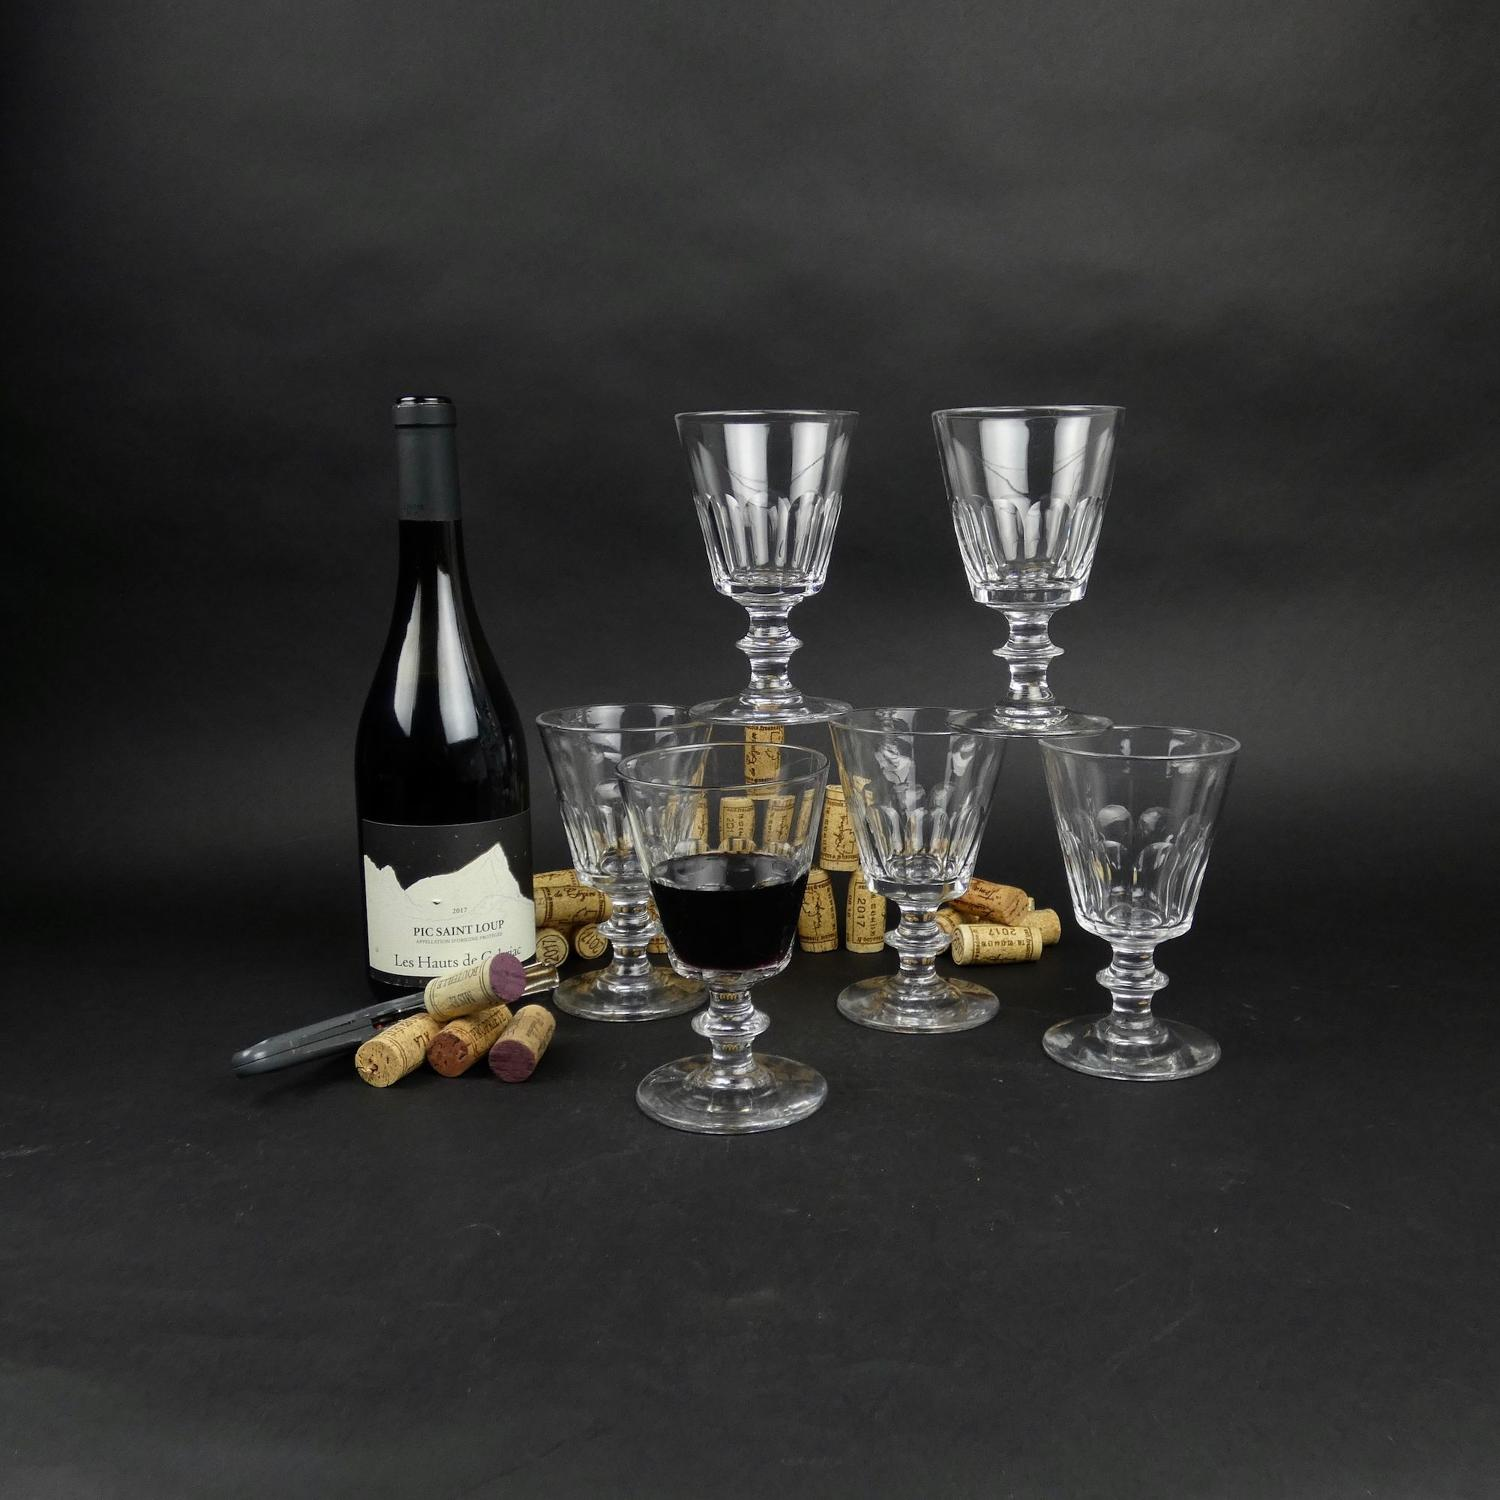 6 French crystal wine glasses